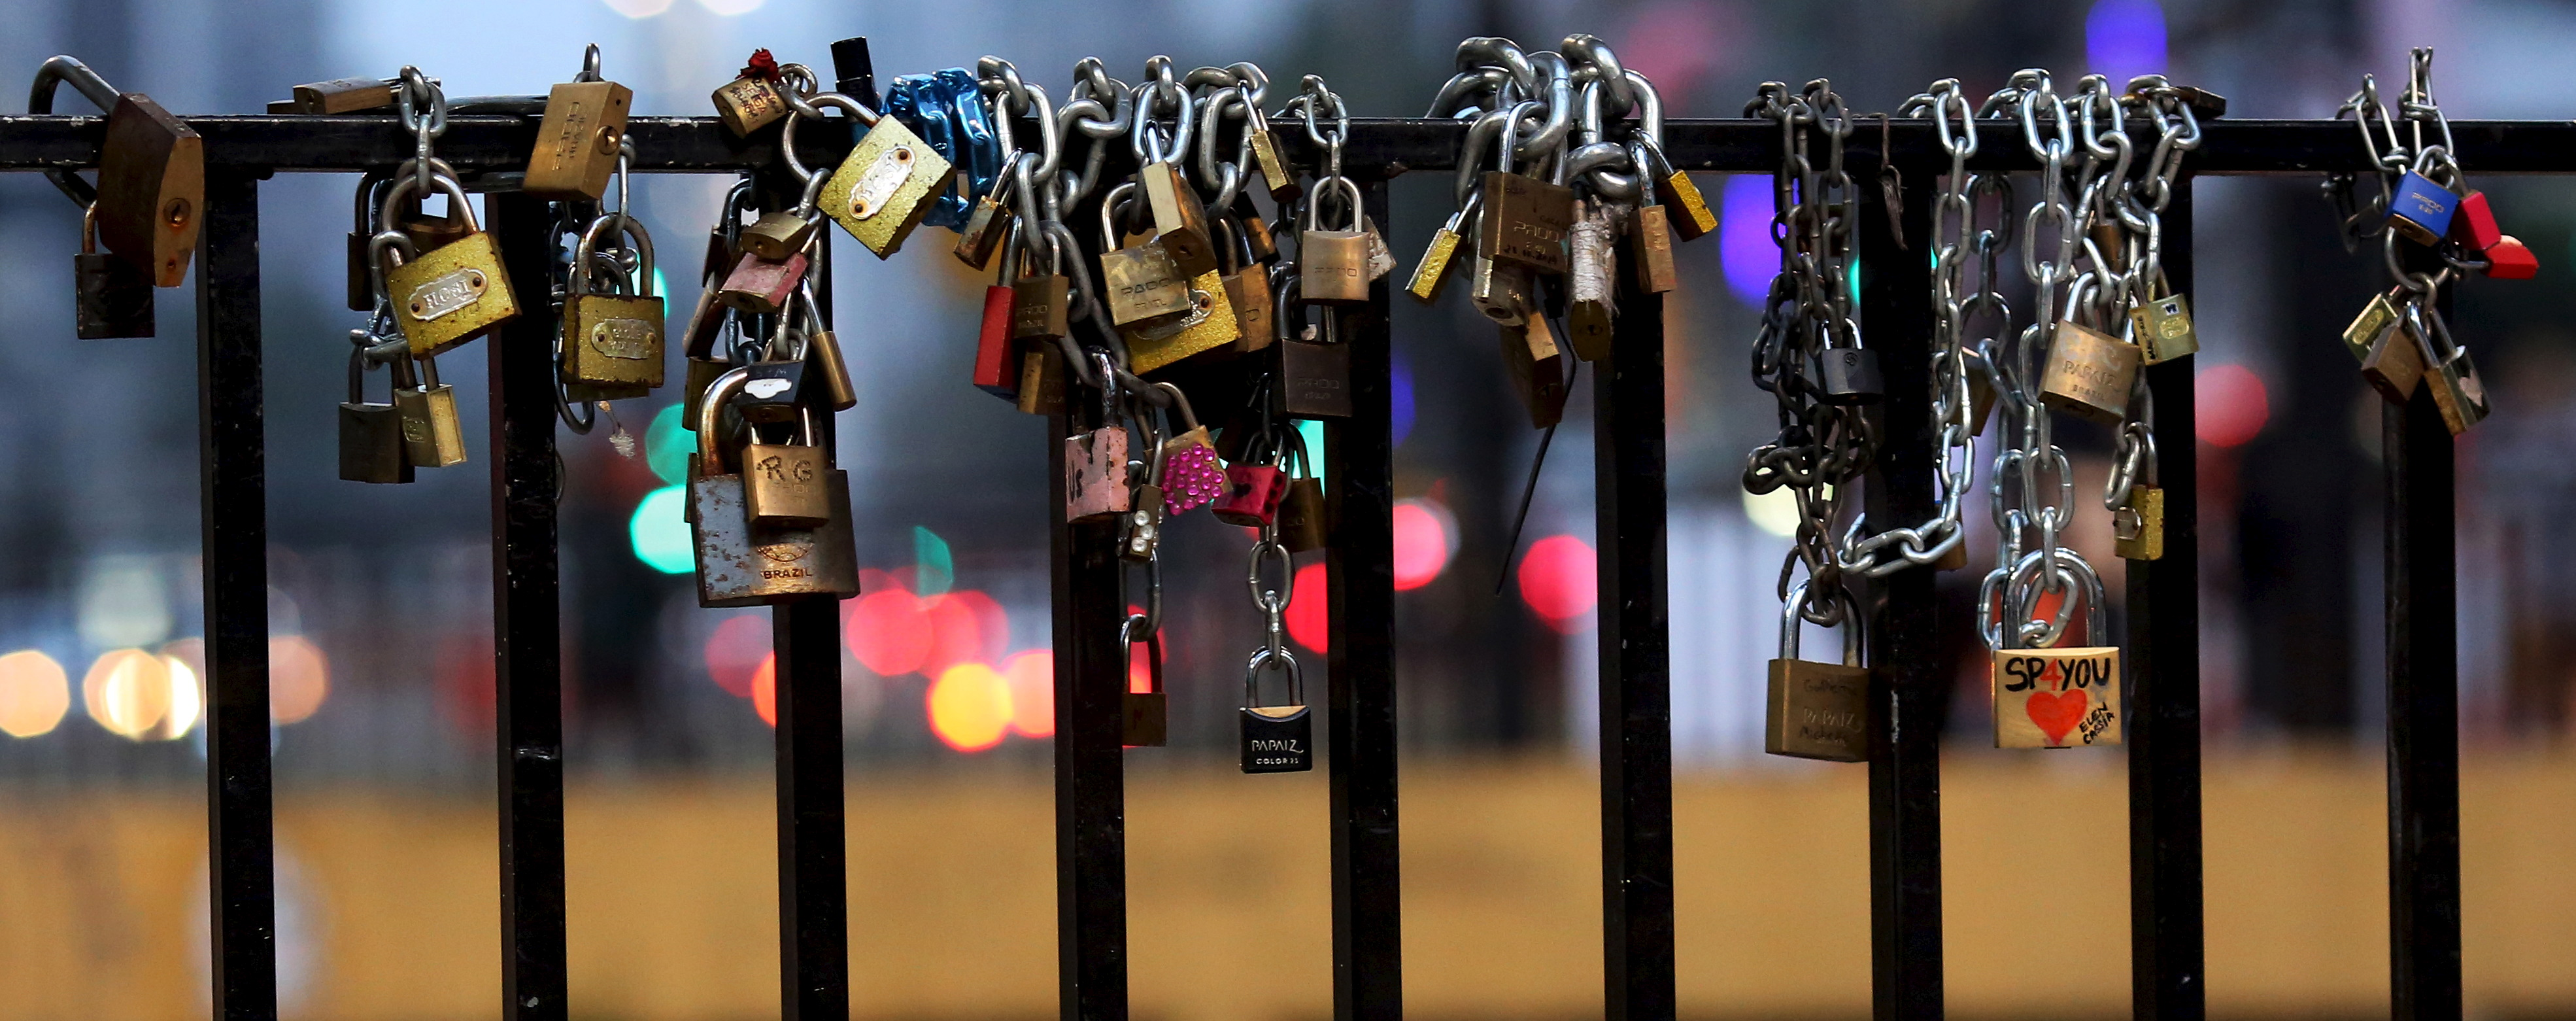 """Love locks"" are seen attached to an iron grill in a viaduct at Paulista Avenue in Sao Paulo's financial centre, June 2, 2015.  REUTERS/Paulo Whitaker - RTR4YKFY"